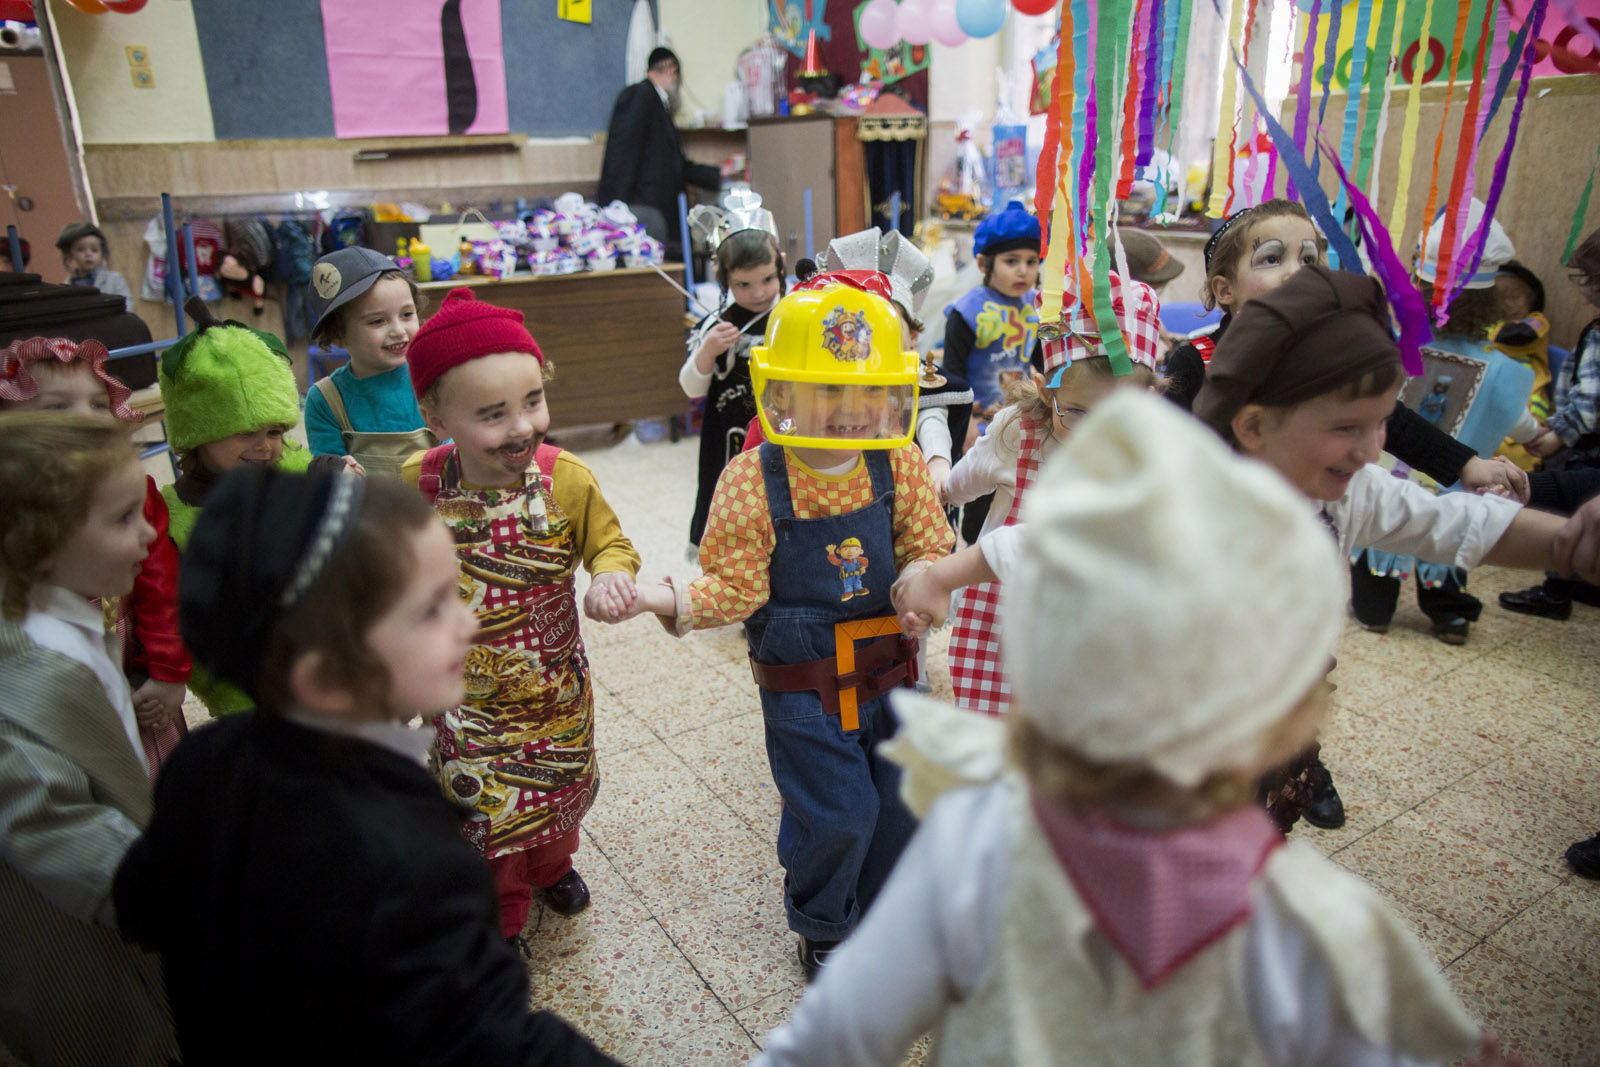 Kindergarten children dressed up for Purim. Photo by Yonatan Sindel/FLASH90